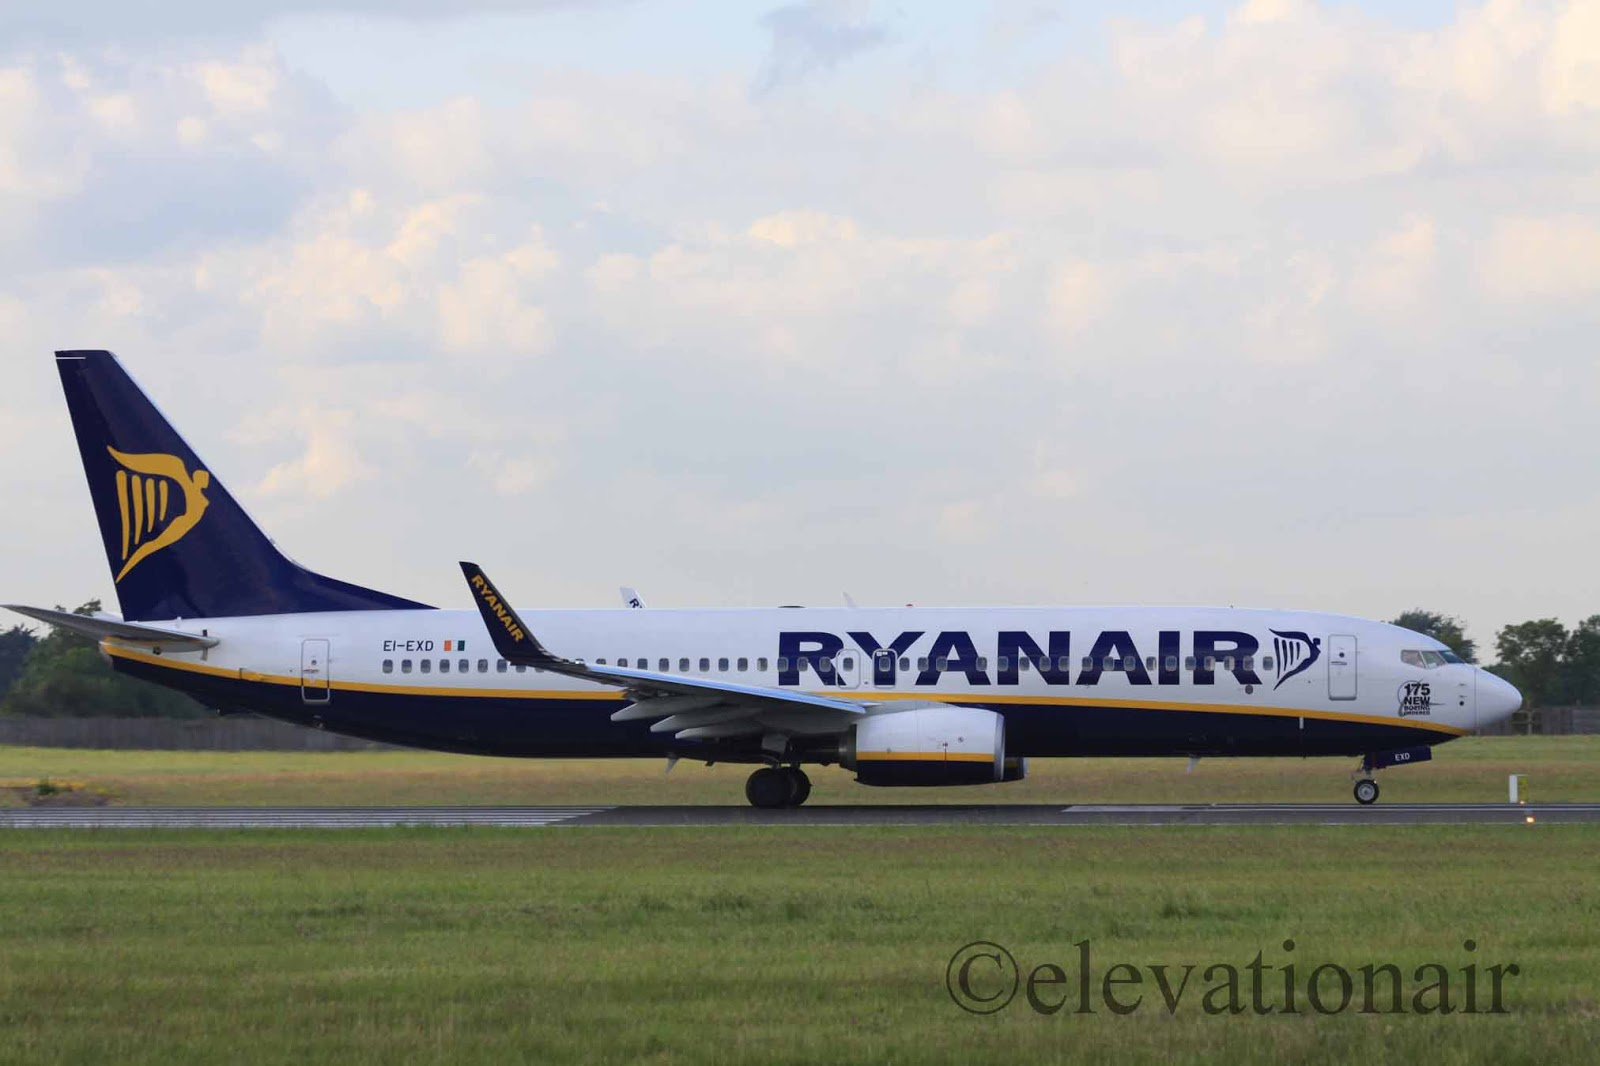 Pic my etihad pearl business class seat 9h on b777 300er may 2012 - Ryanair Reinstates Doncaster To Tenerife South Route